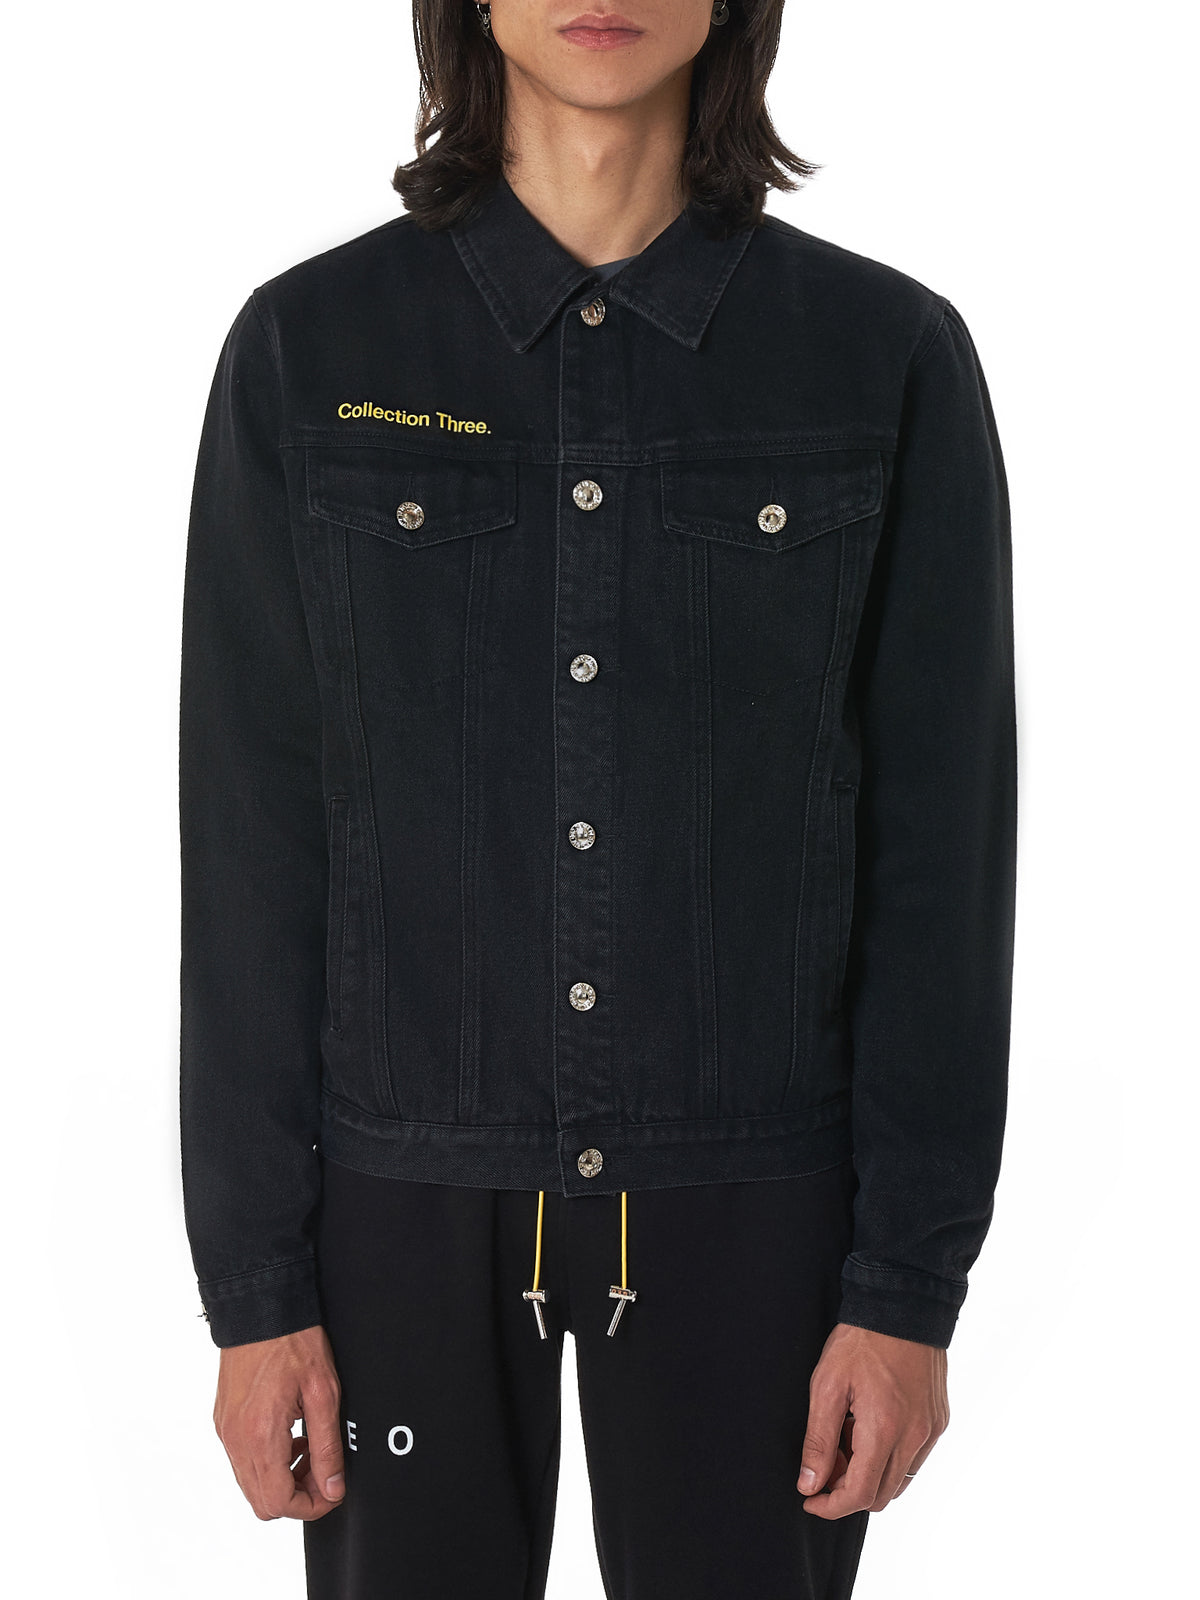 Geo Black Denim Jacket - Hlorenzo Front